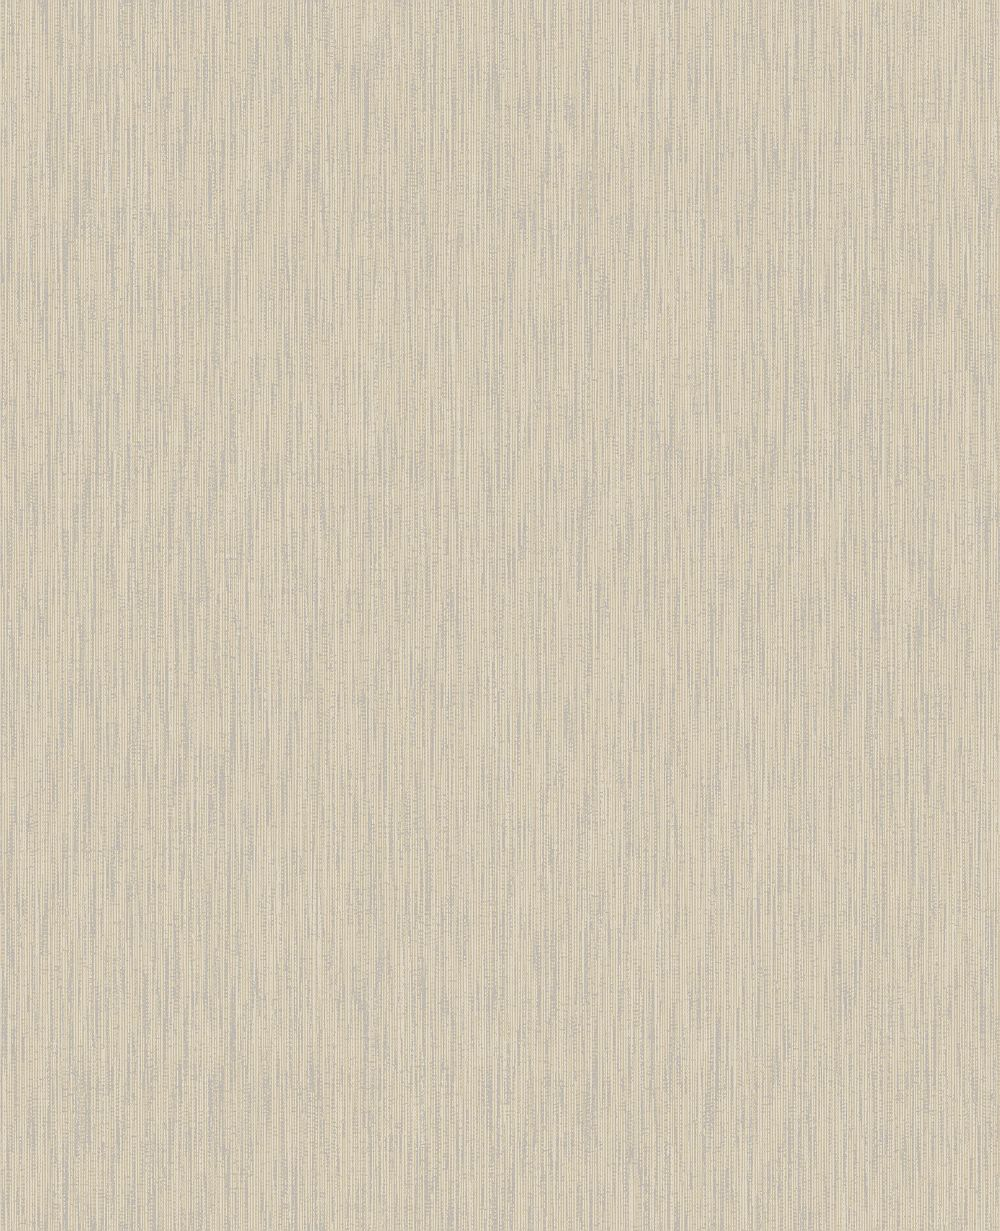 Albany Glitter Texture Beige Wallpaper - Product code: 40955